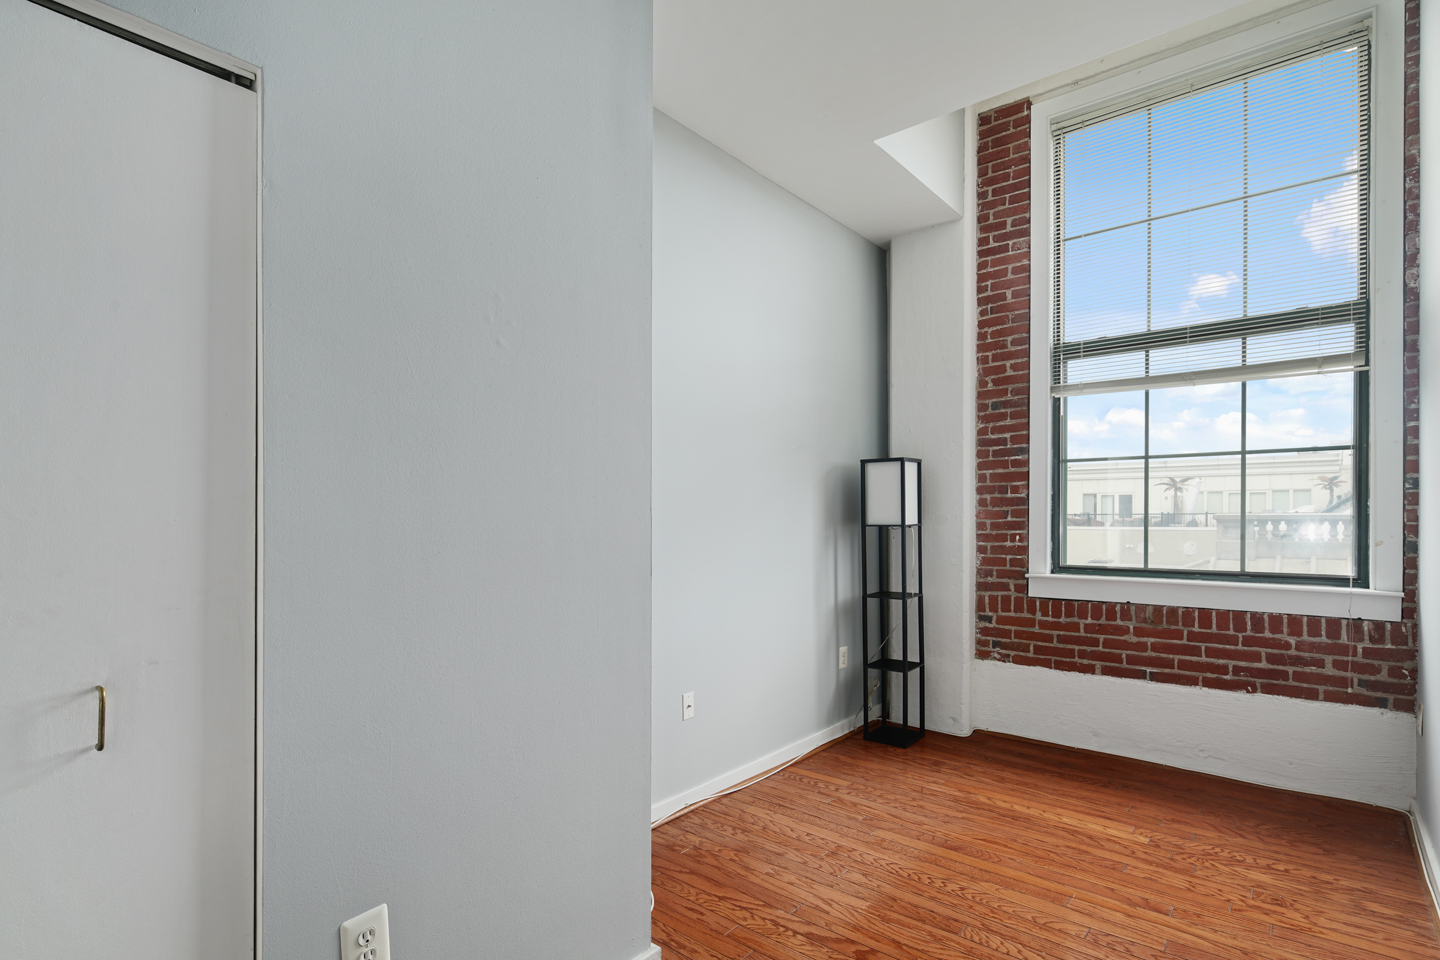 315 New St Unit 410 reshoot-MLS-6.jpg